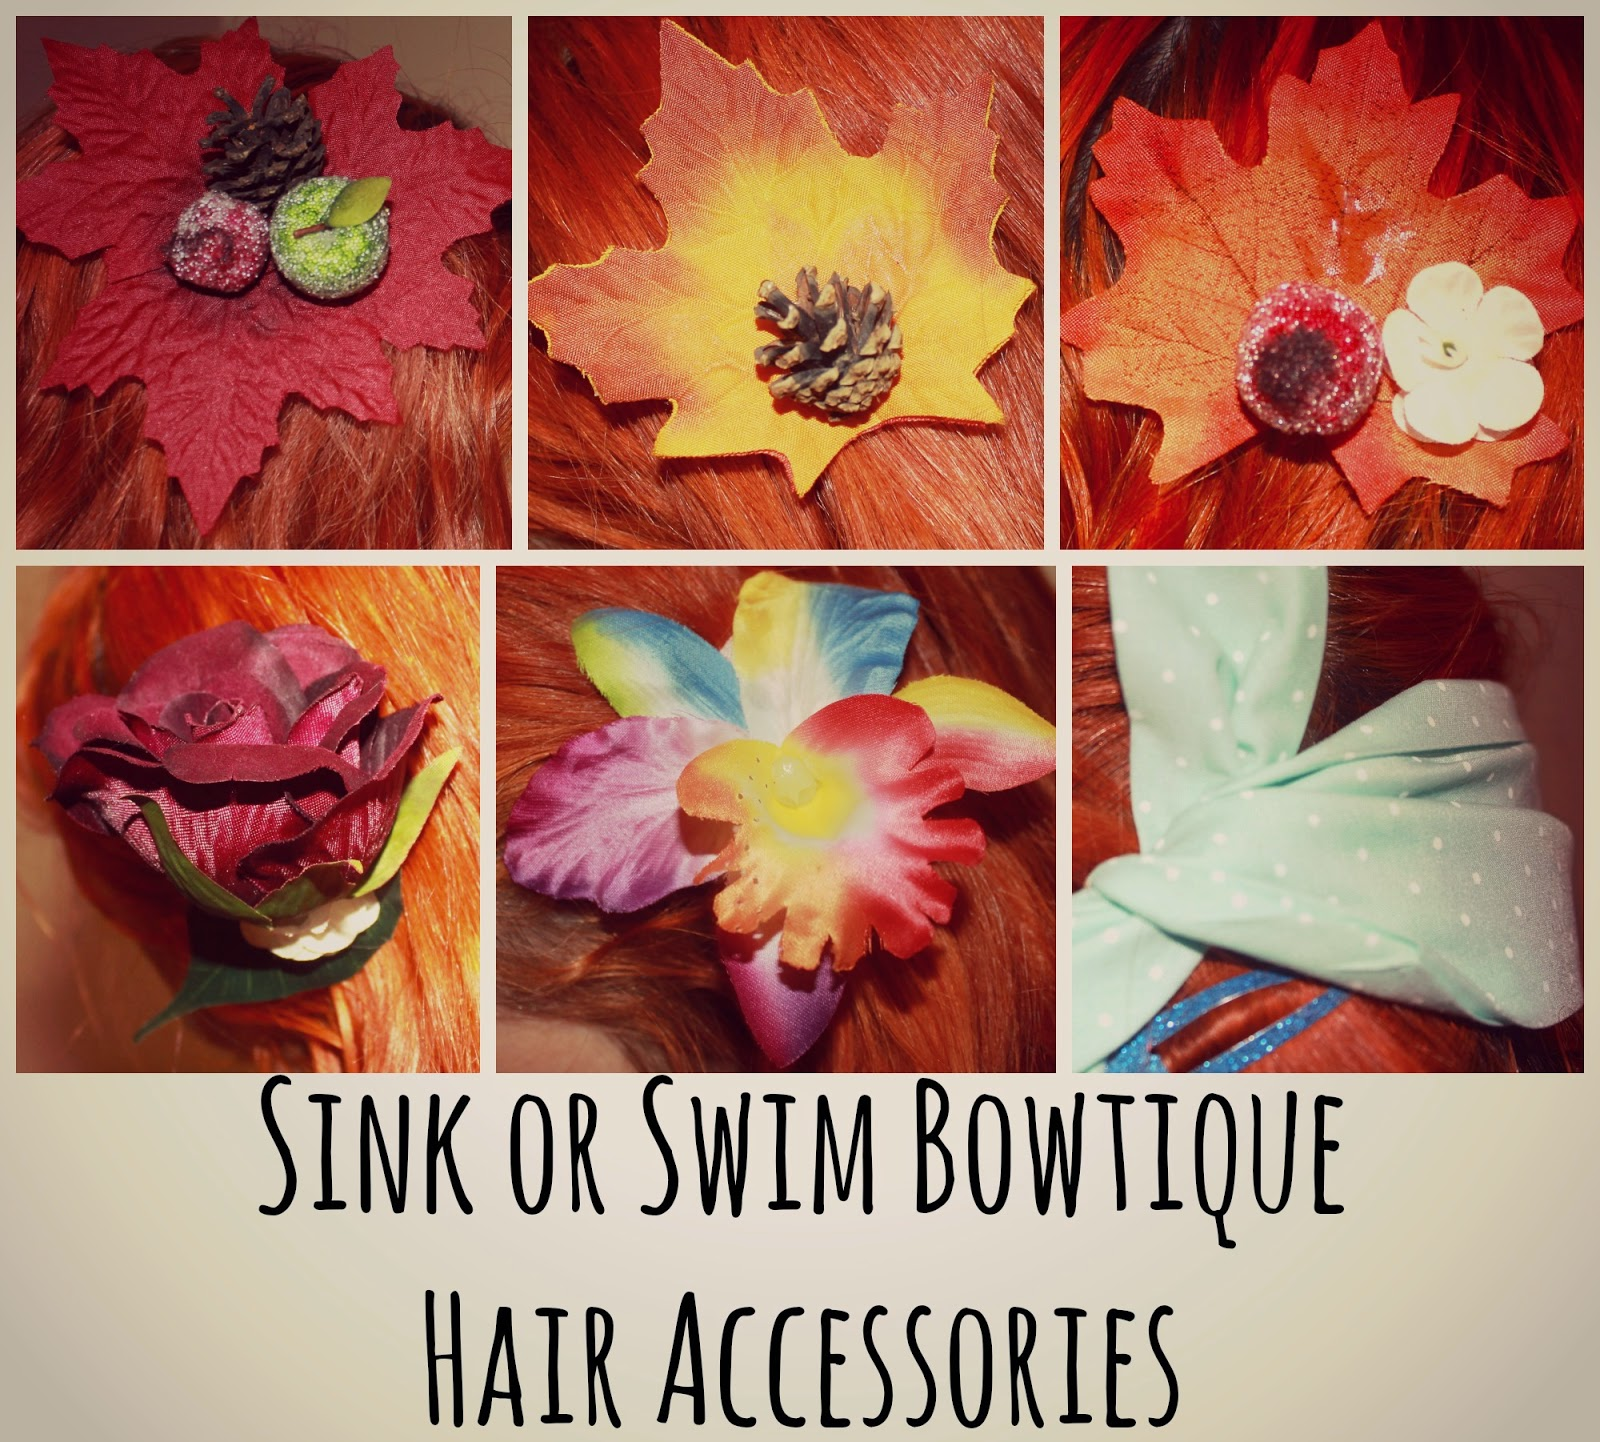 Sink or Swim Bowtique Vintage Style Hair Accessories